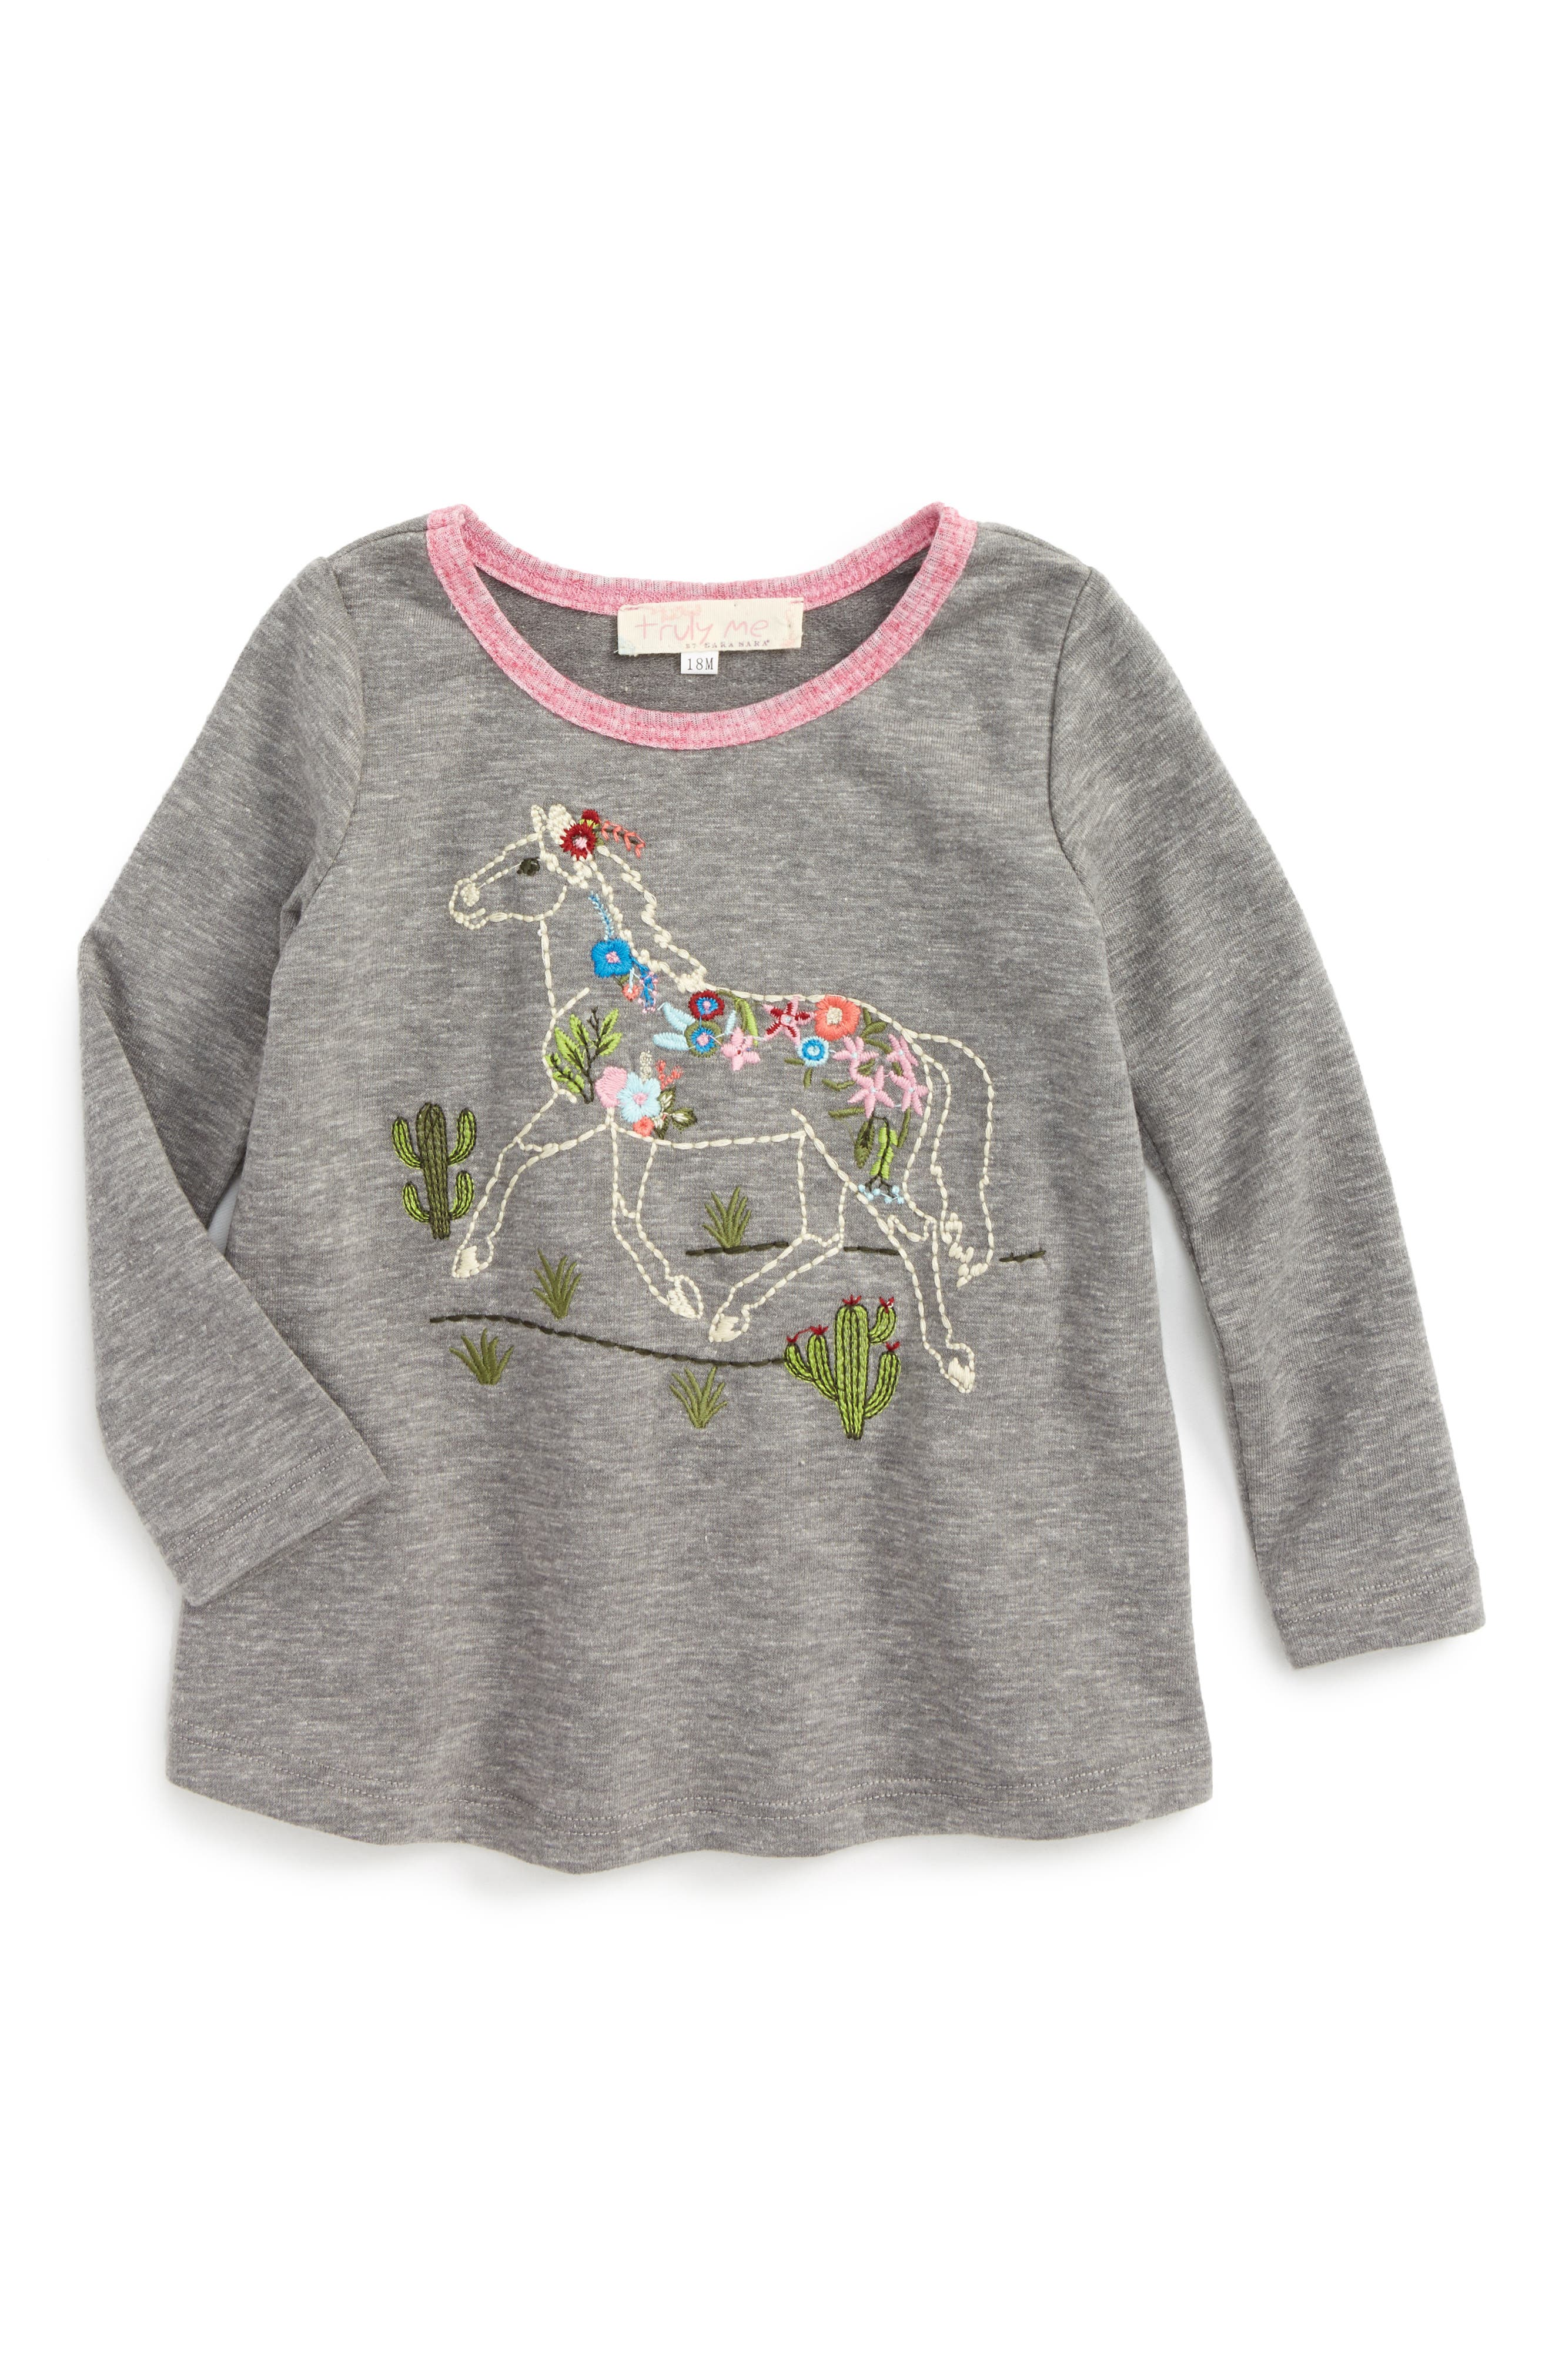 Main Image - Truly Me Embroidered Horse Tee (Baby Girls)